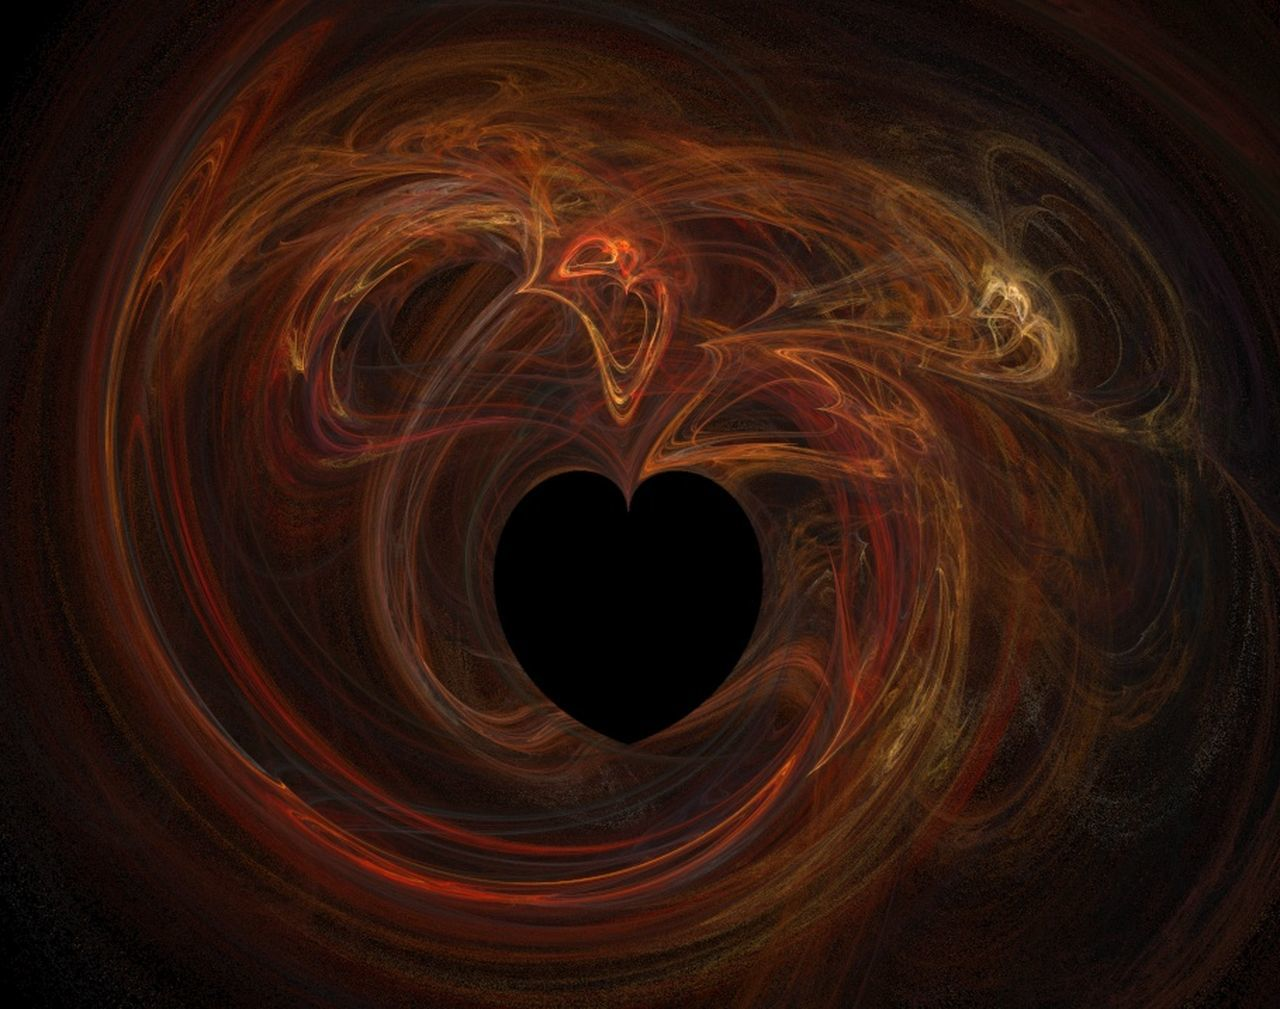 Fractal 5 Beautiful flows of different color build this fractal Abstract Abstraction ArtWork Backdrop Background Color Colorful Compositon Digital Digital Art Dynamic Effect Fractal Fractals Generated Geometry Heart Love Render Romance Romantic Surreal Valentine Valentine's Day  Vibrant Color